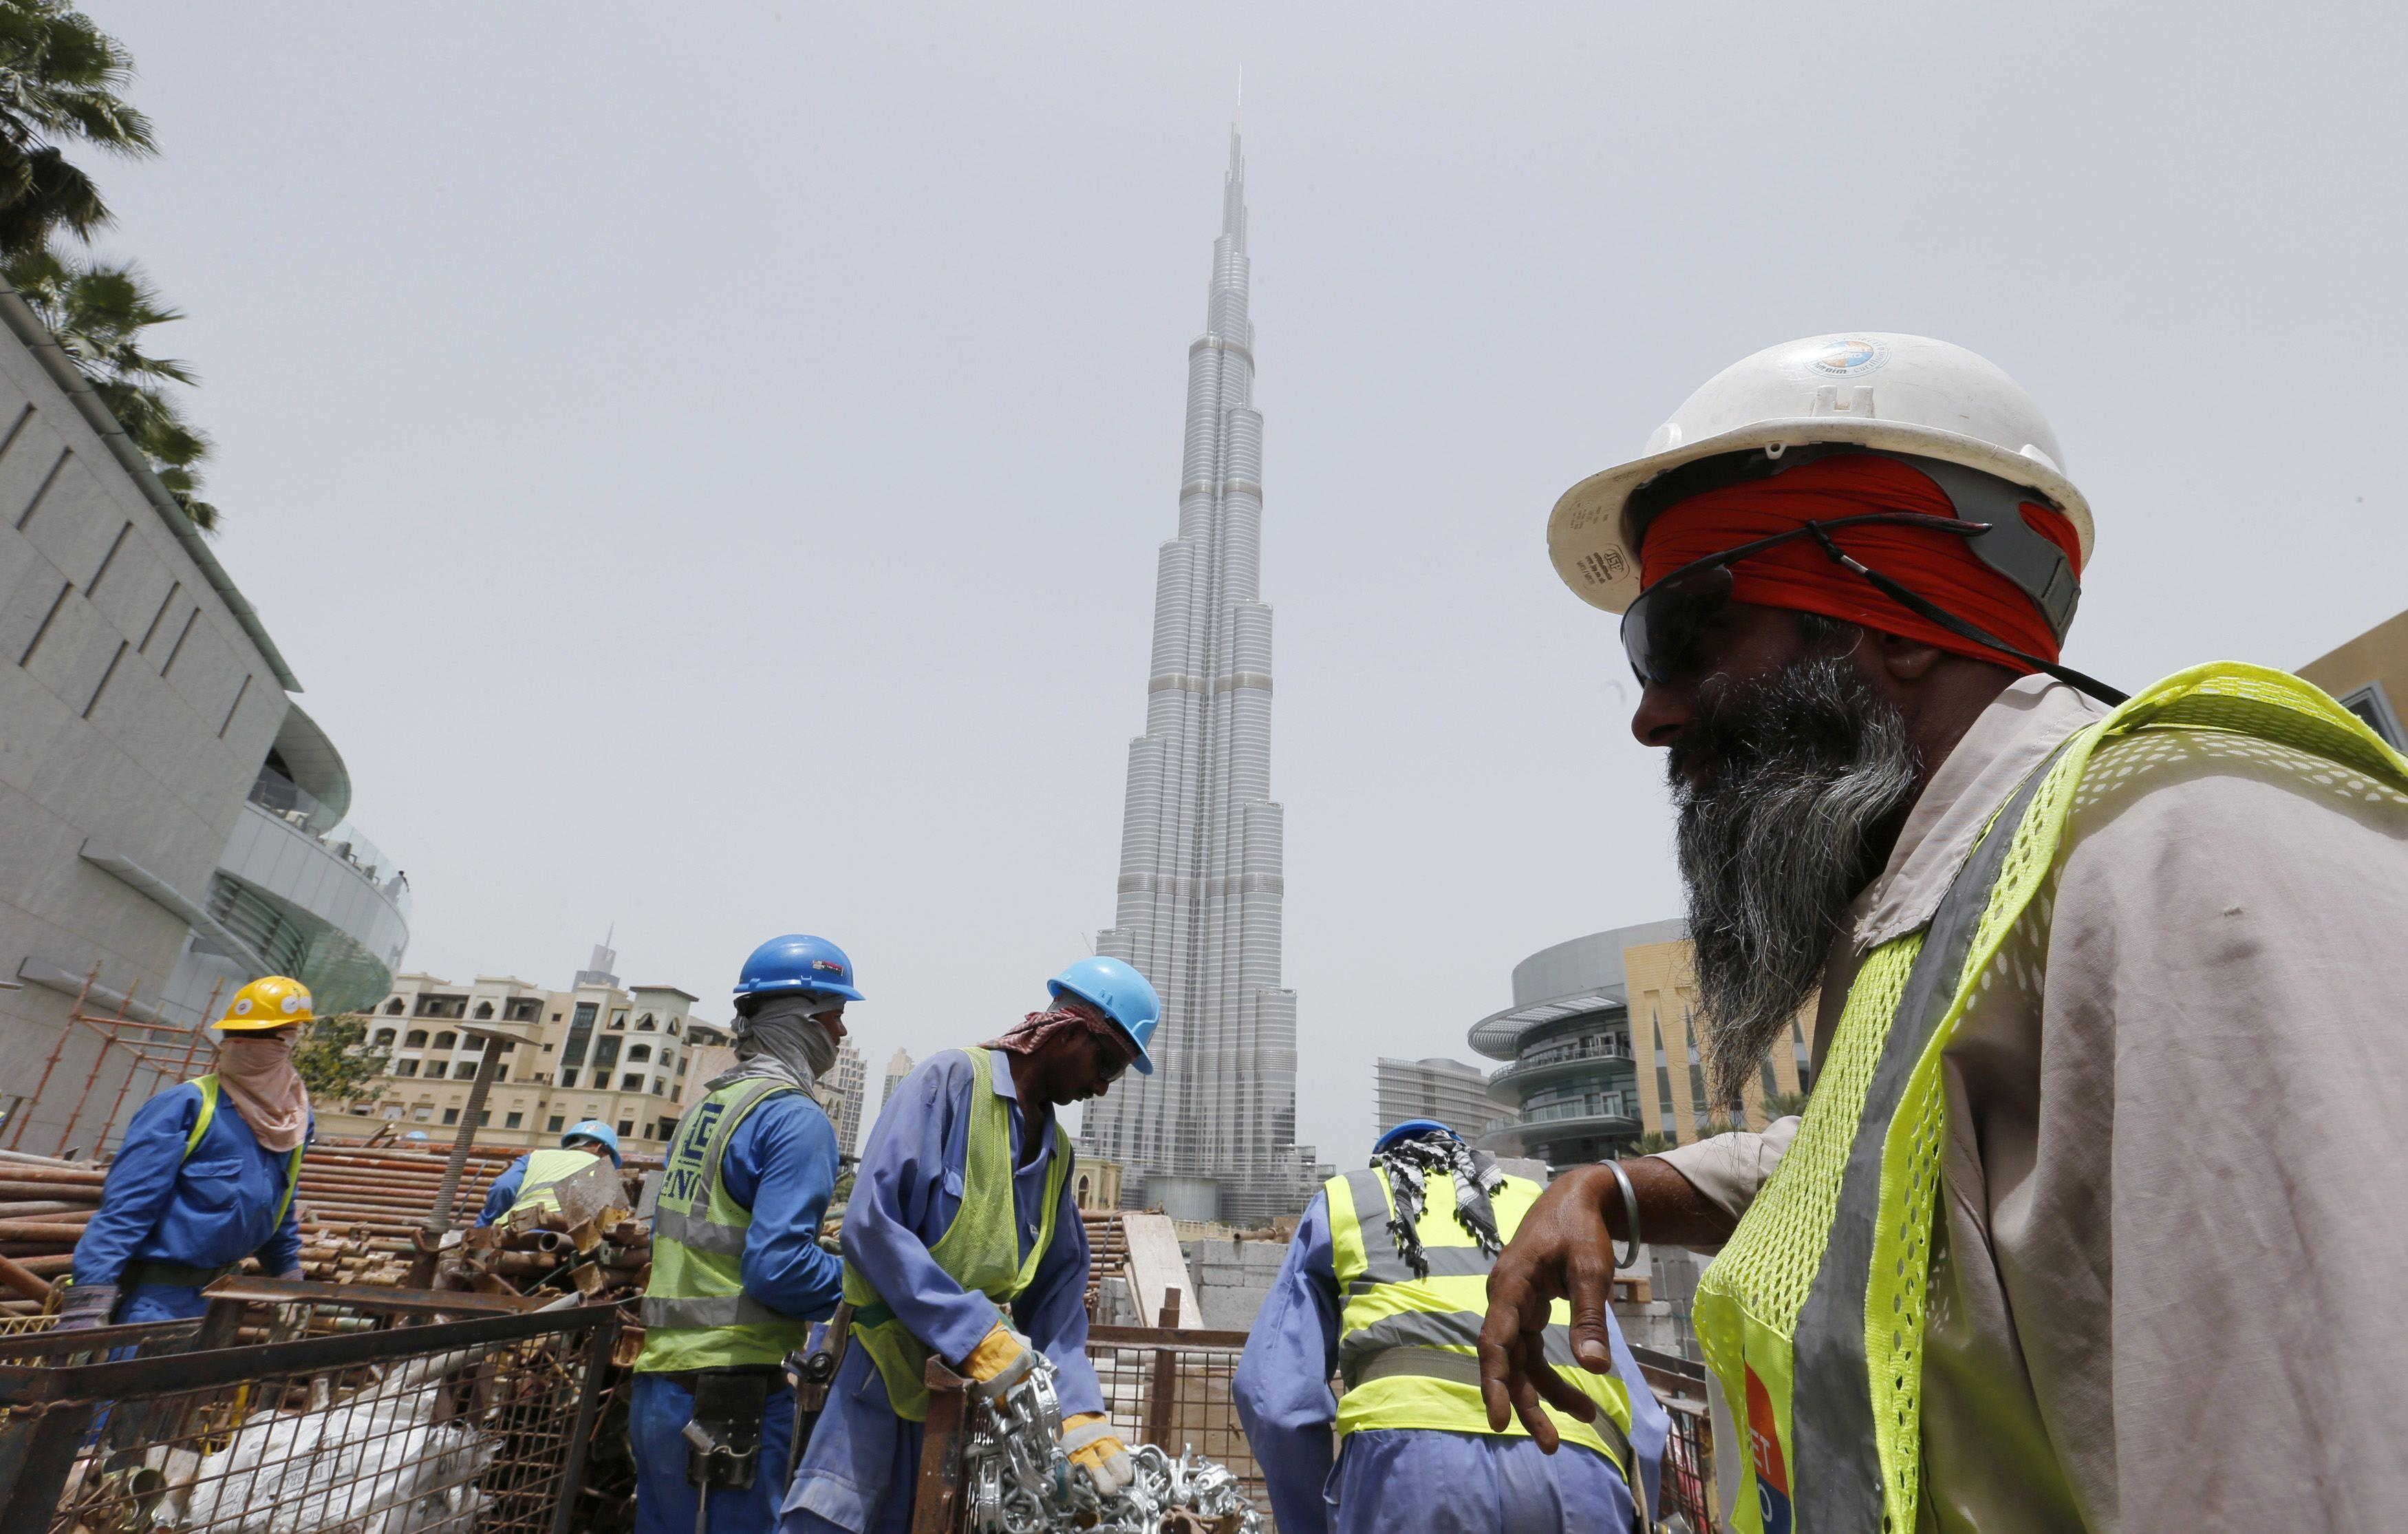 construction-workers-dubai-burj-khalifa-reuters-050714